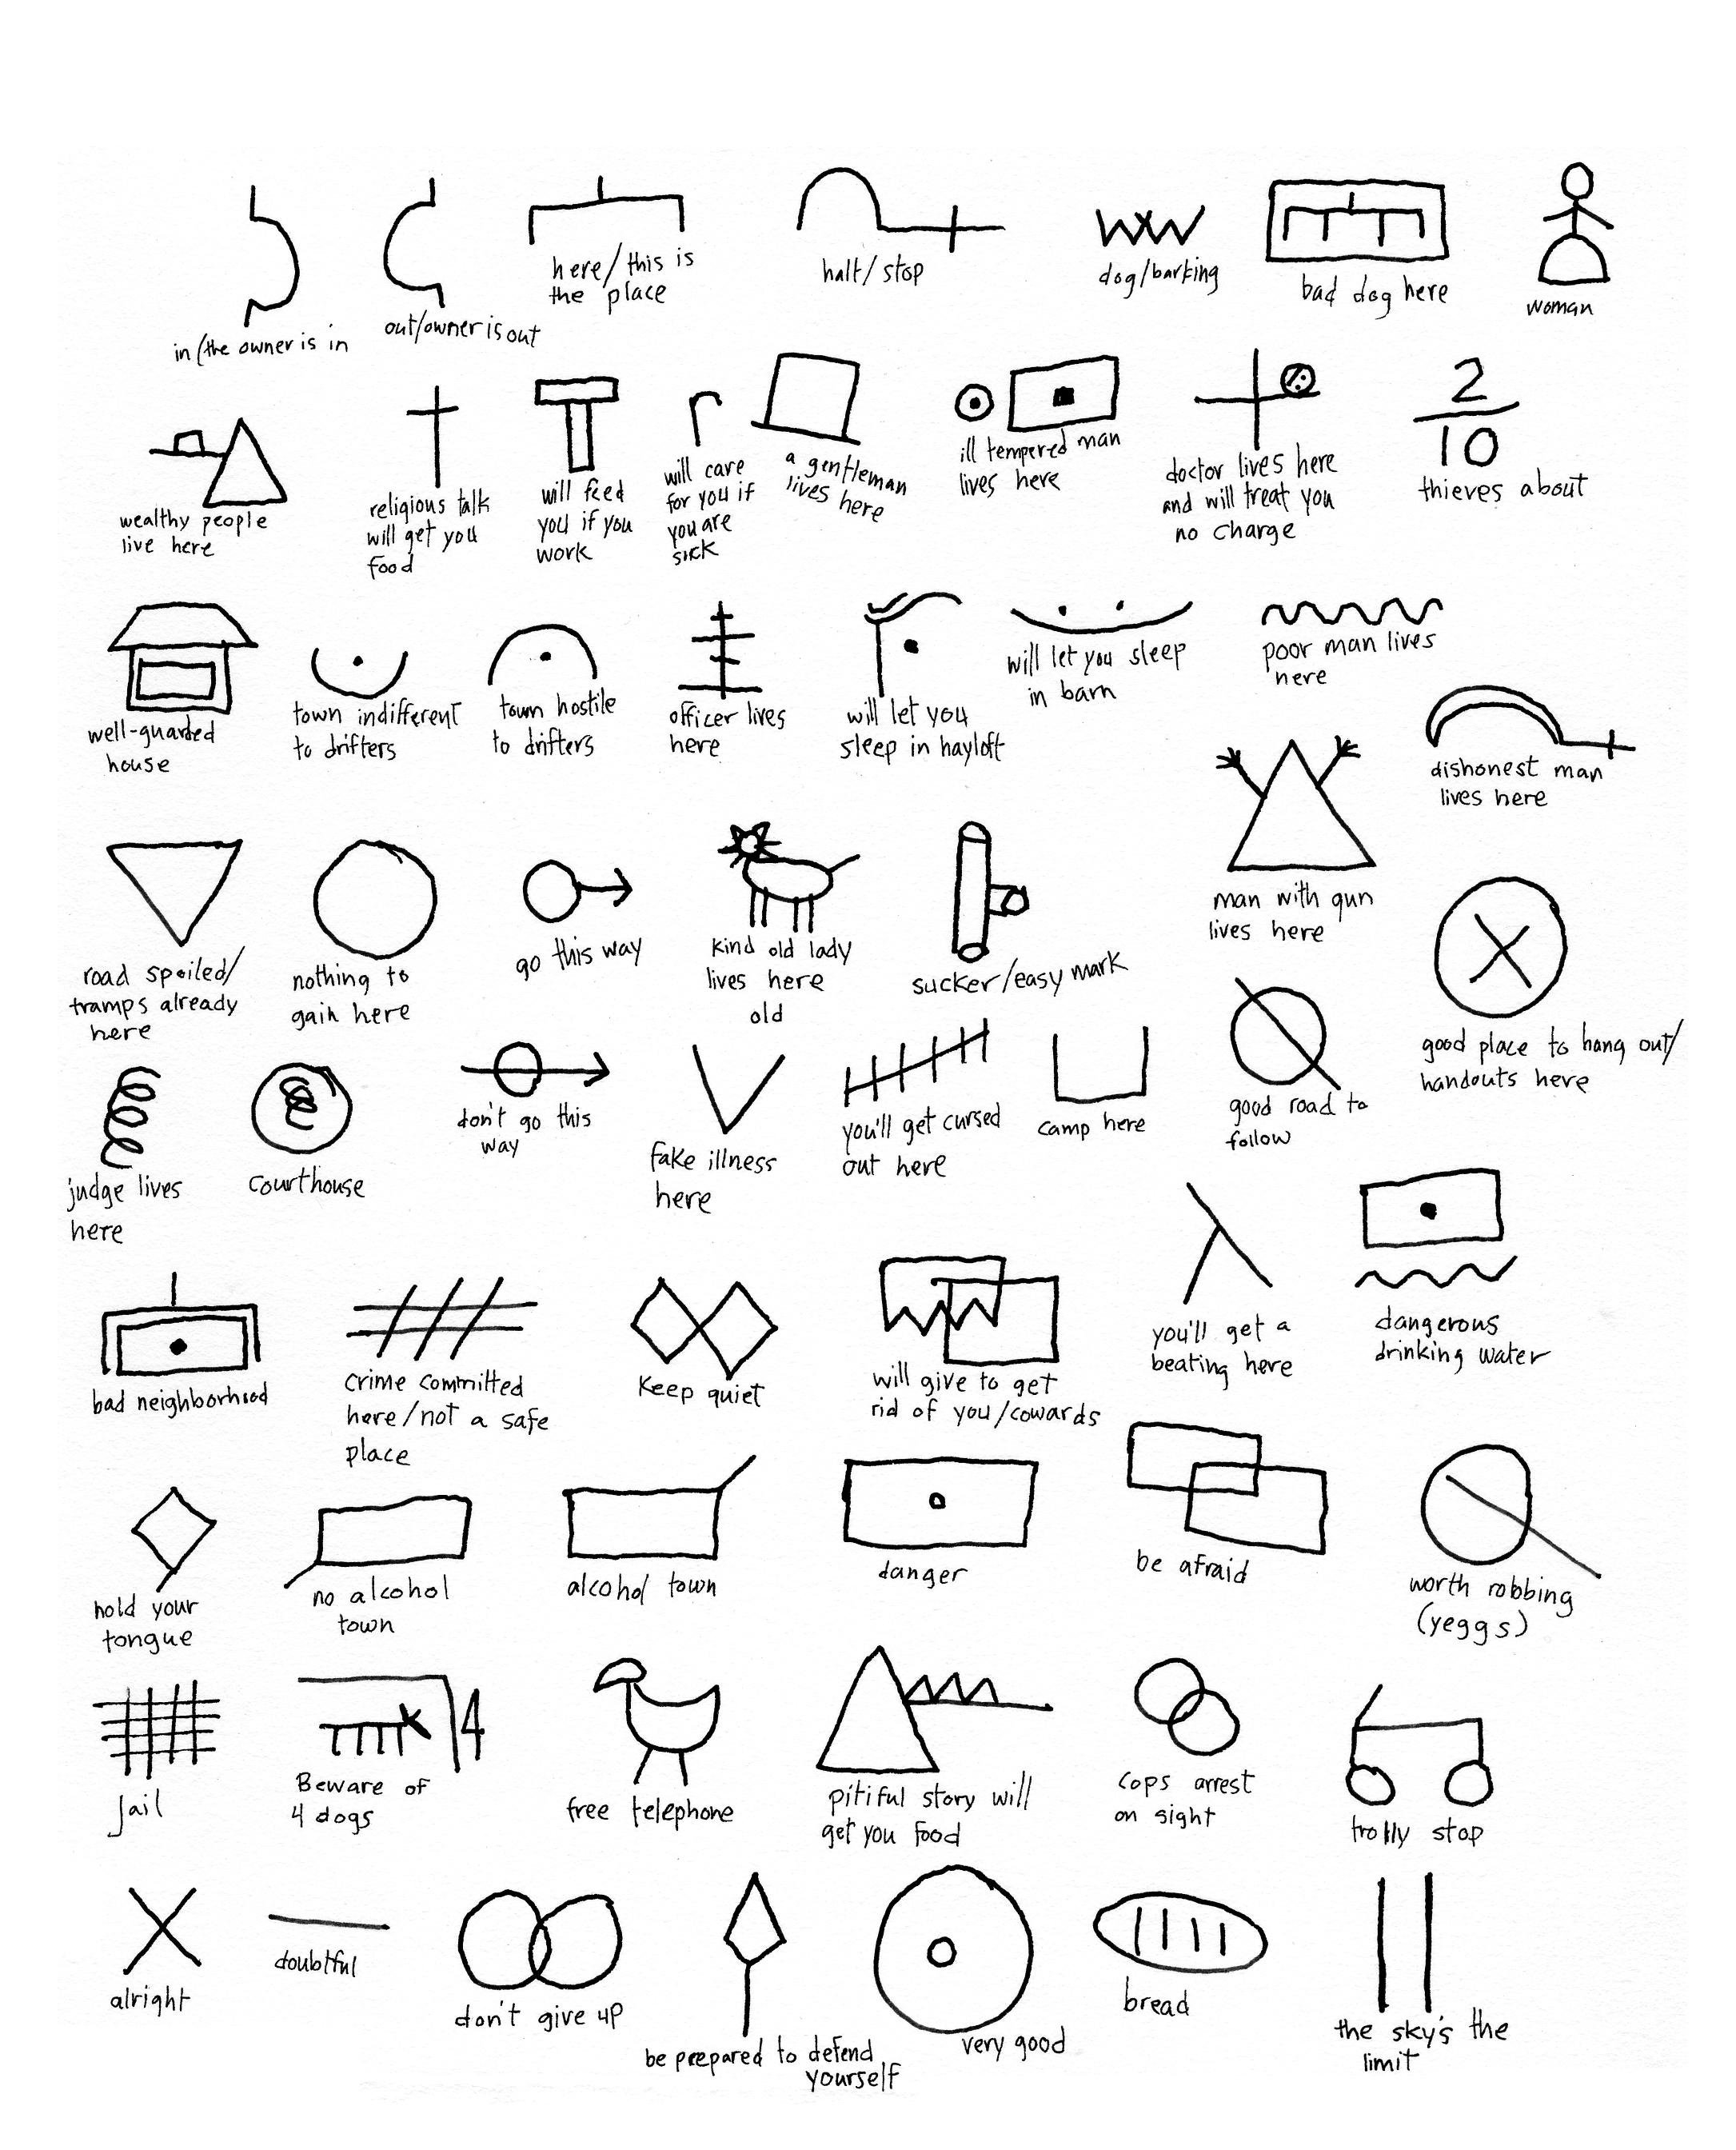 hobo signs 1 , ink on paper, 8.5in. x 7in., 2009